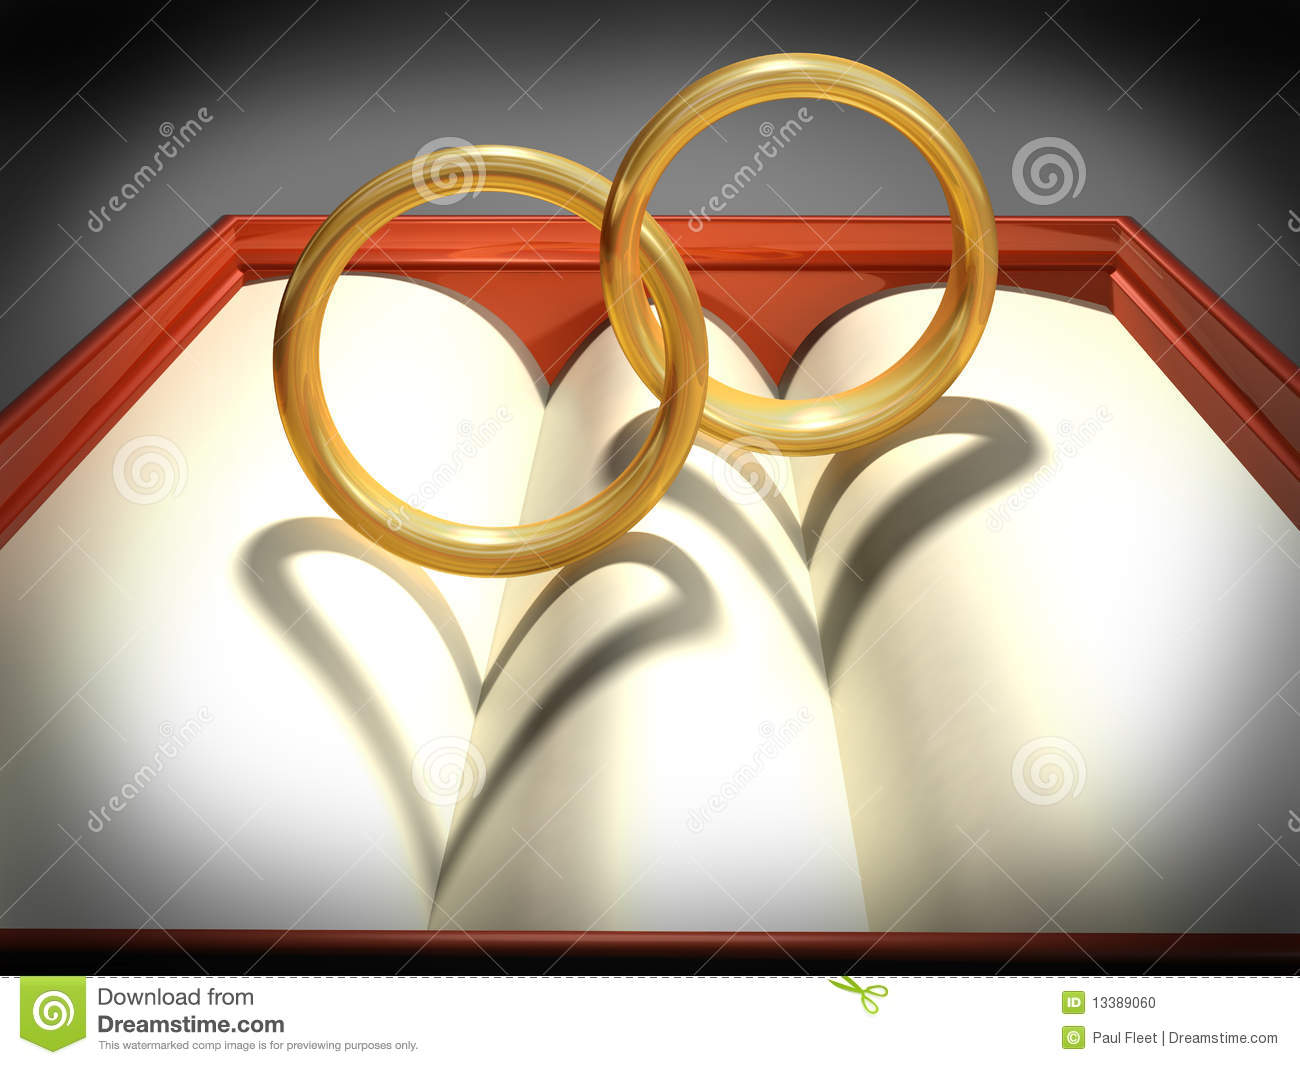 interlocking wedding rings clipart - photo #36